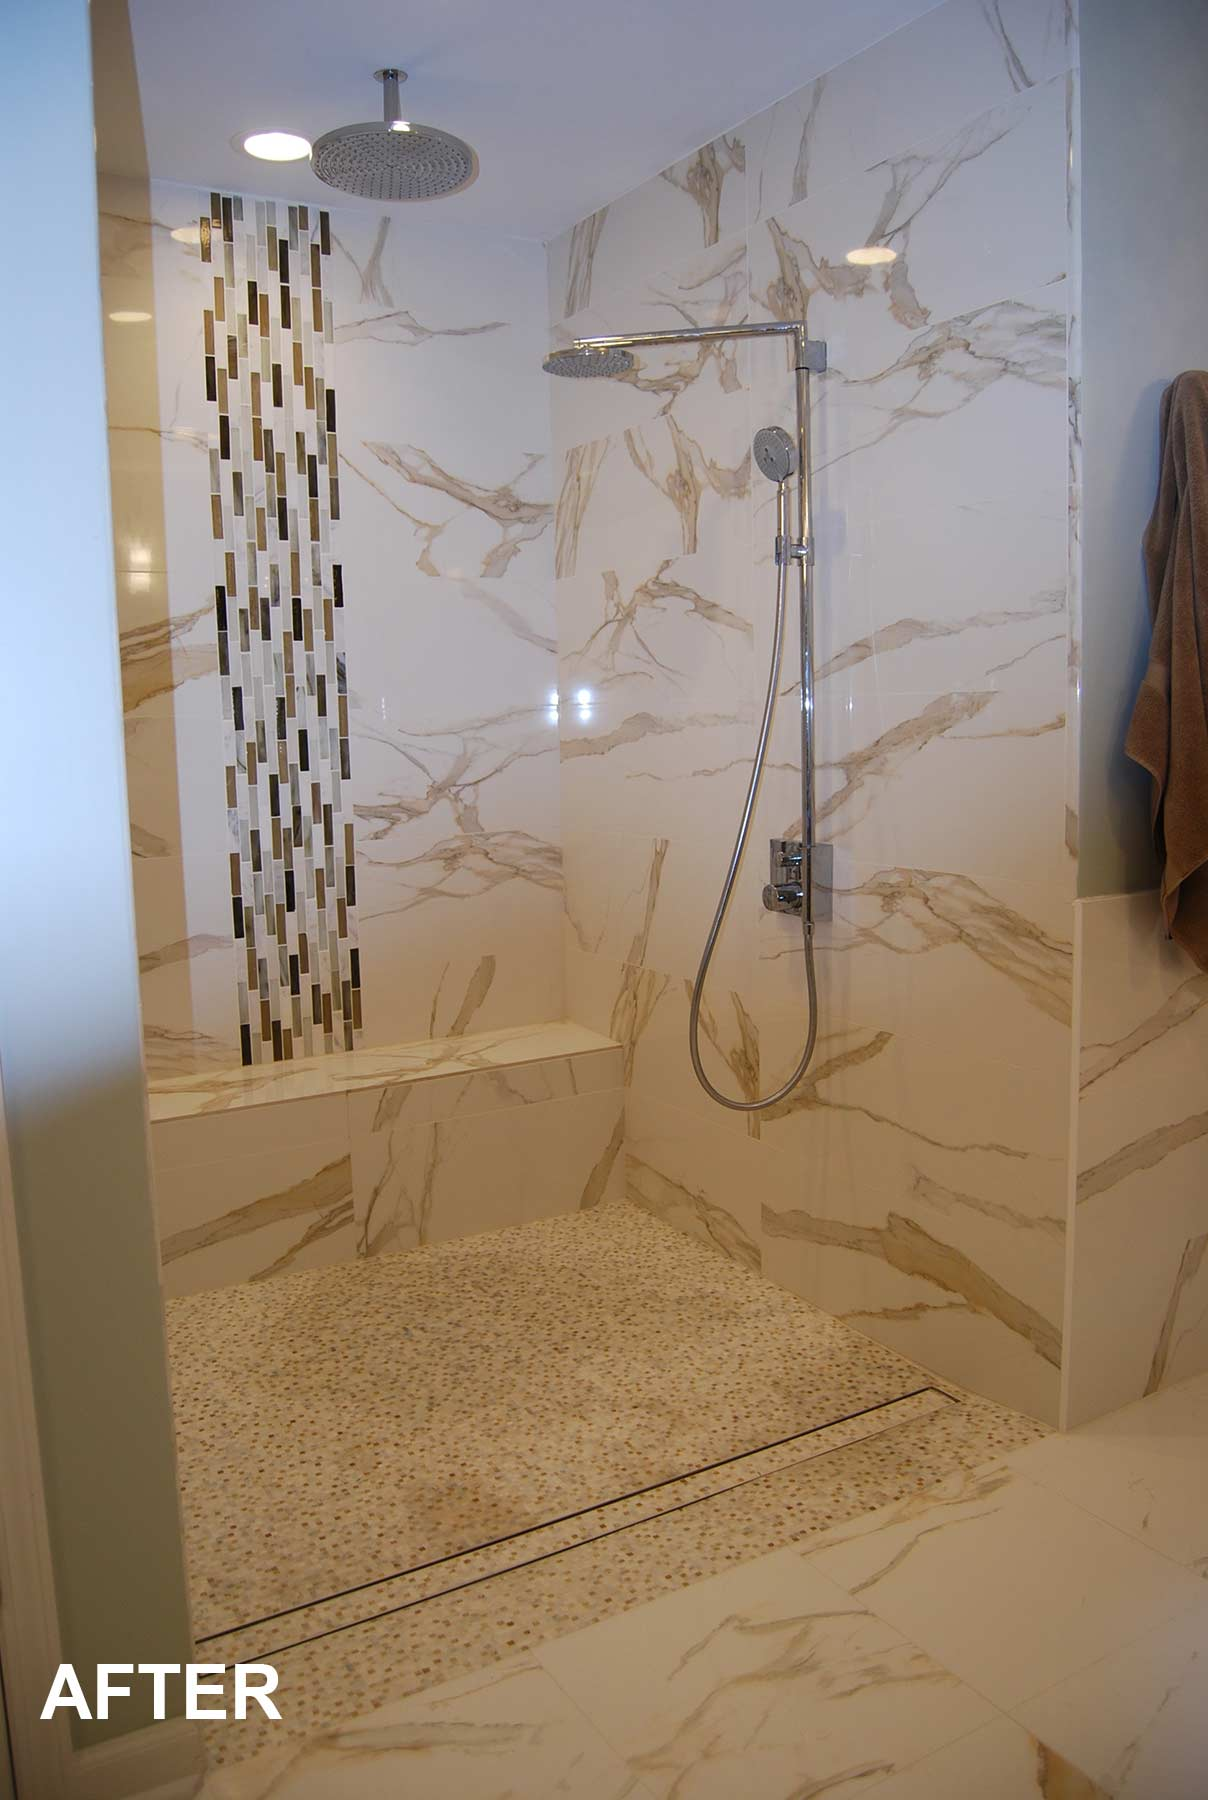 View of curbless shower after remodeling